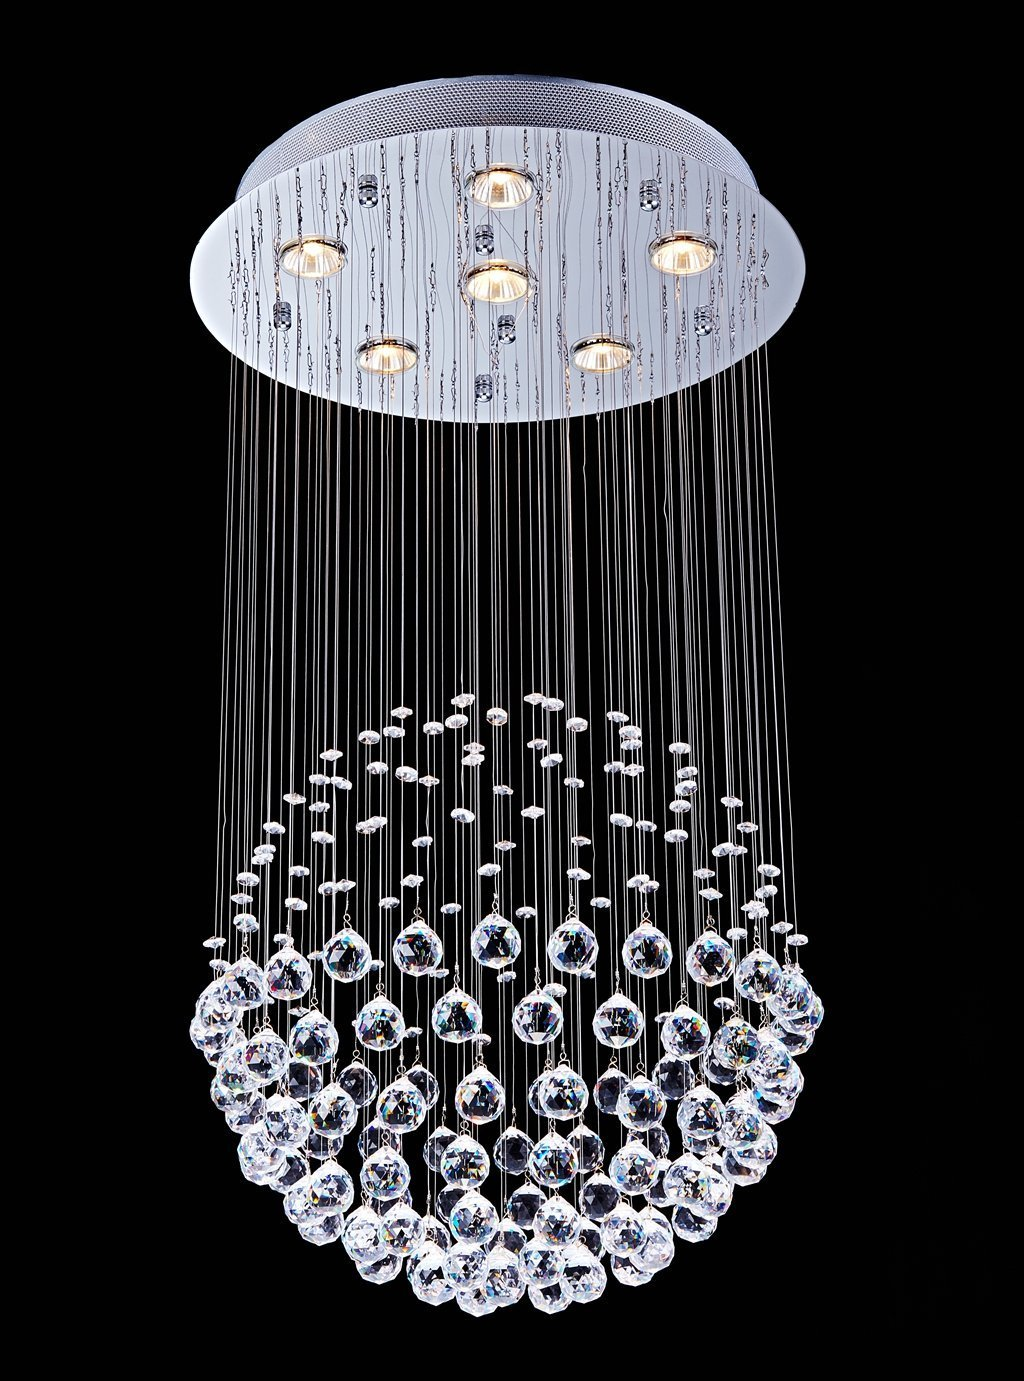 Saint Mossi Chandelier Modern K9 Crystal Raindrop Chandelier Lighting Flush mount LED Ceiling Light Fixture Pendant Lamp for Dining Room Bathroom Bedroom Livingroom 6 GU10 LED Bulbs Required H32 X D18 by Saint Mossi